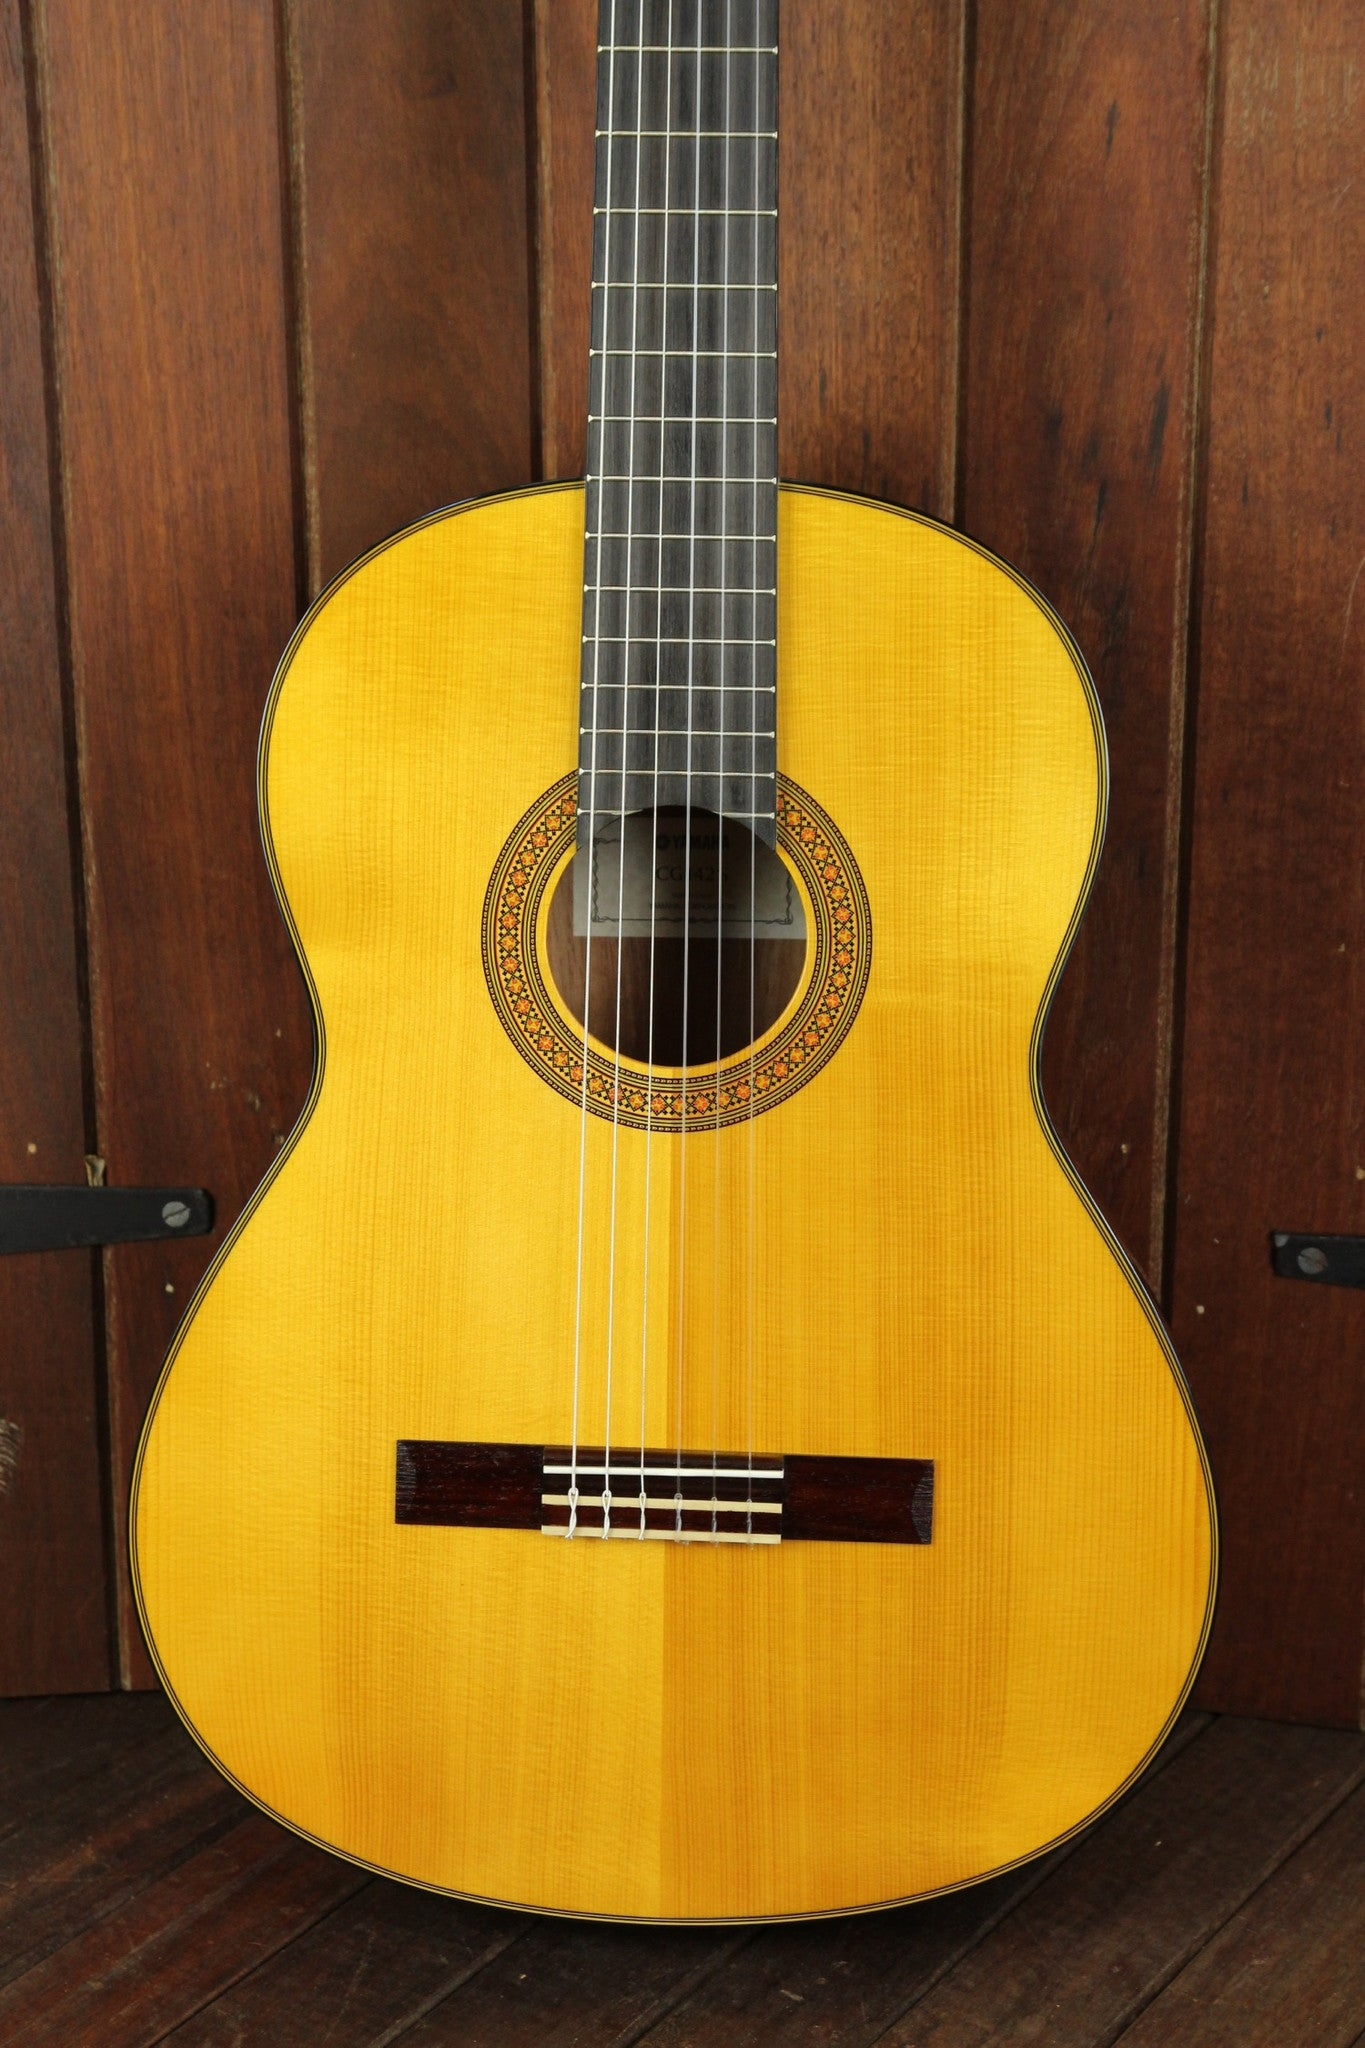 Yamaha CG142 Solid Top Nylon String Guitar - The Rock Inn - 1